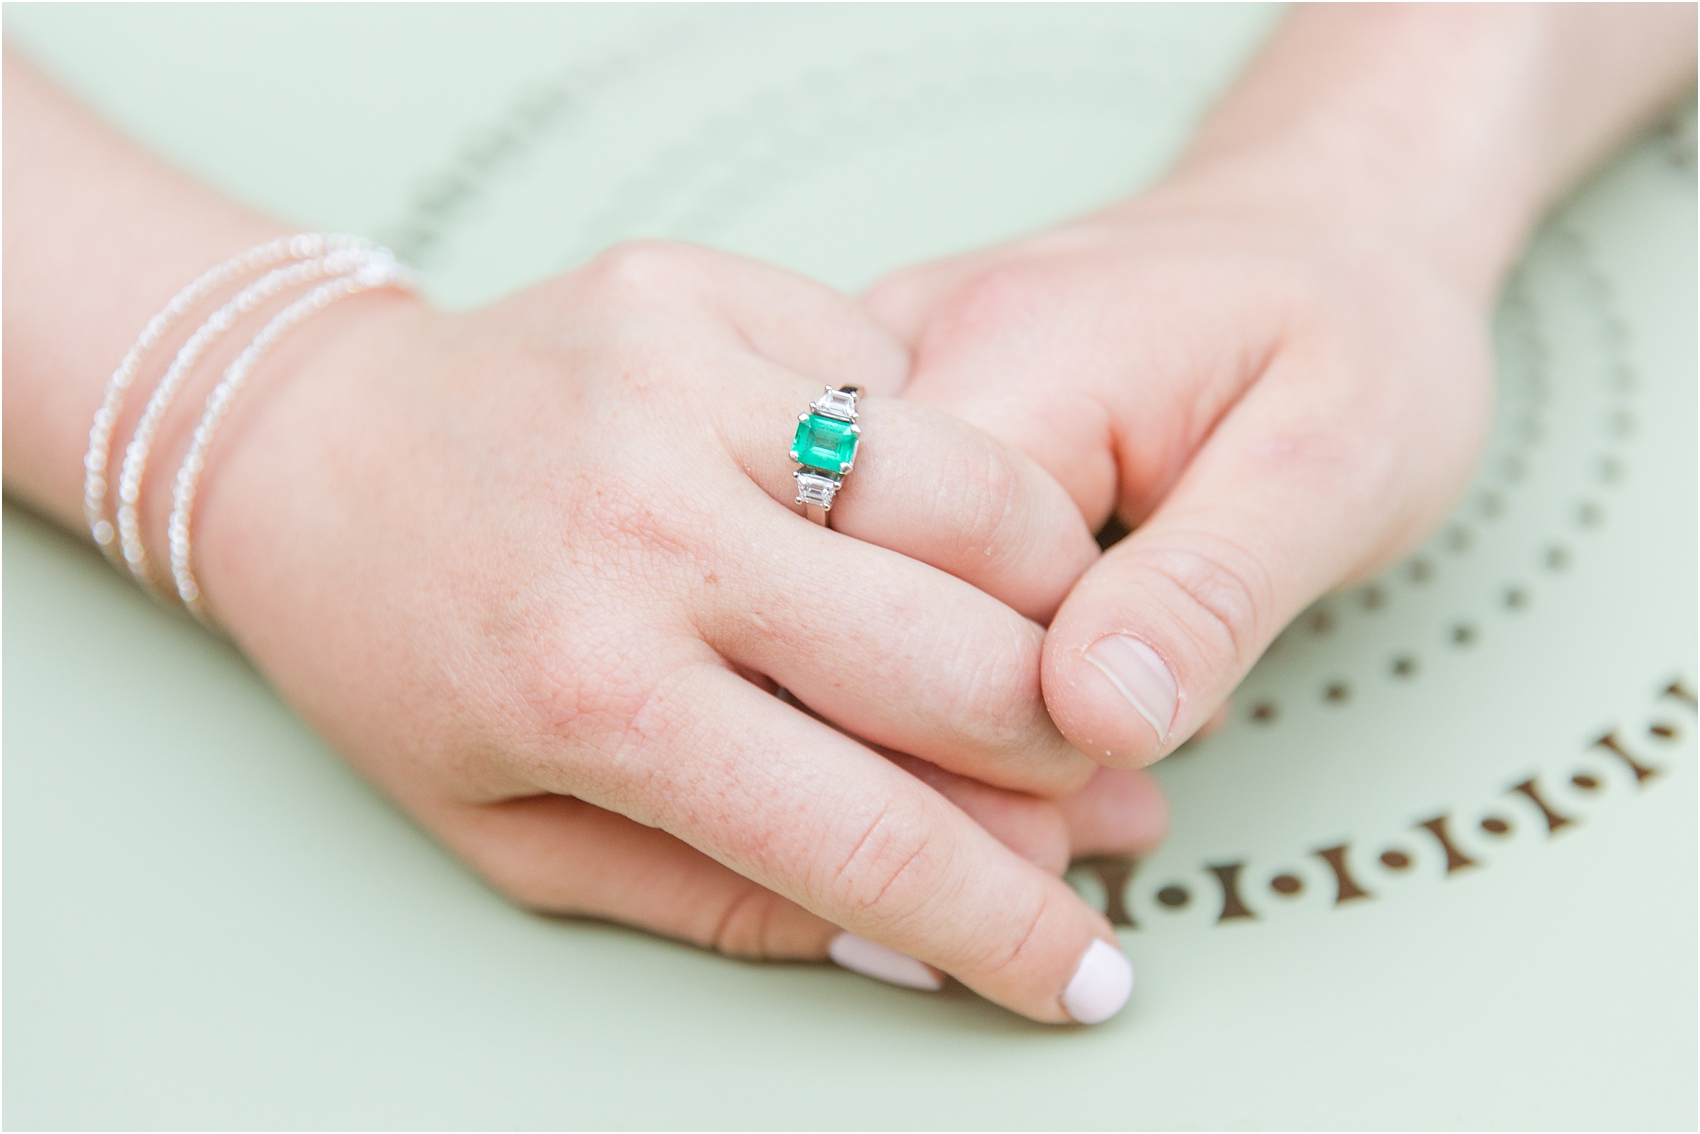 fun-adventurous-engagement-photos-at-the-nickels-arcade-in-ann-arbor-mi-by-courtney-carolyn-photography_0021.jpg